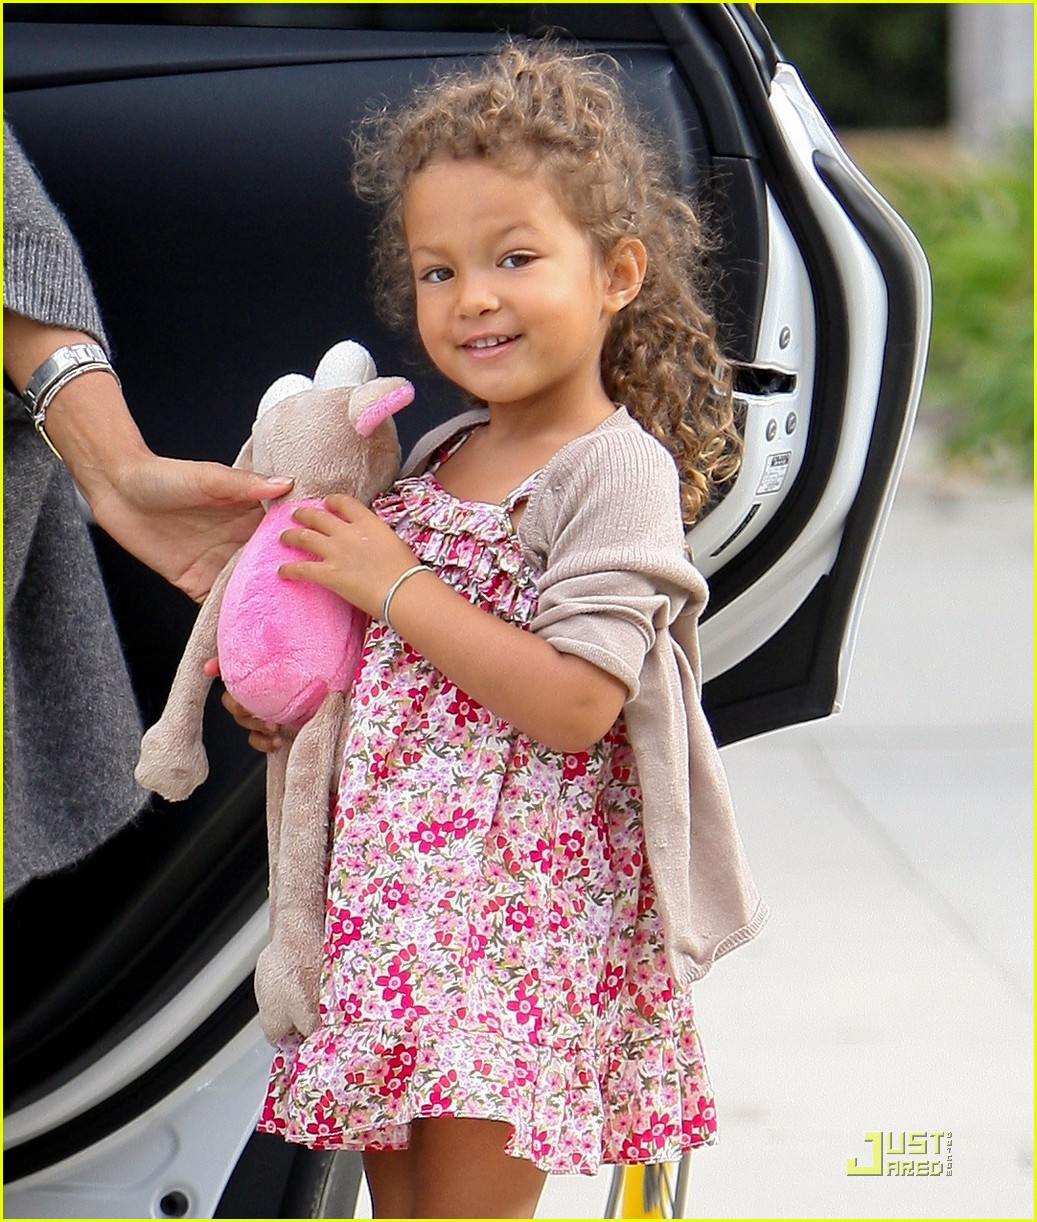 Very classy Halle Berry drops off adorable daughter Nahla at school in Hollywood CA